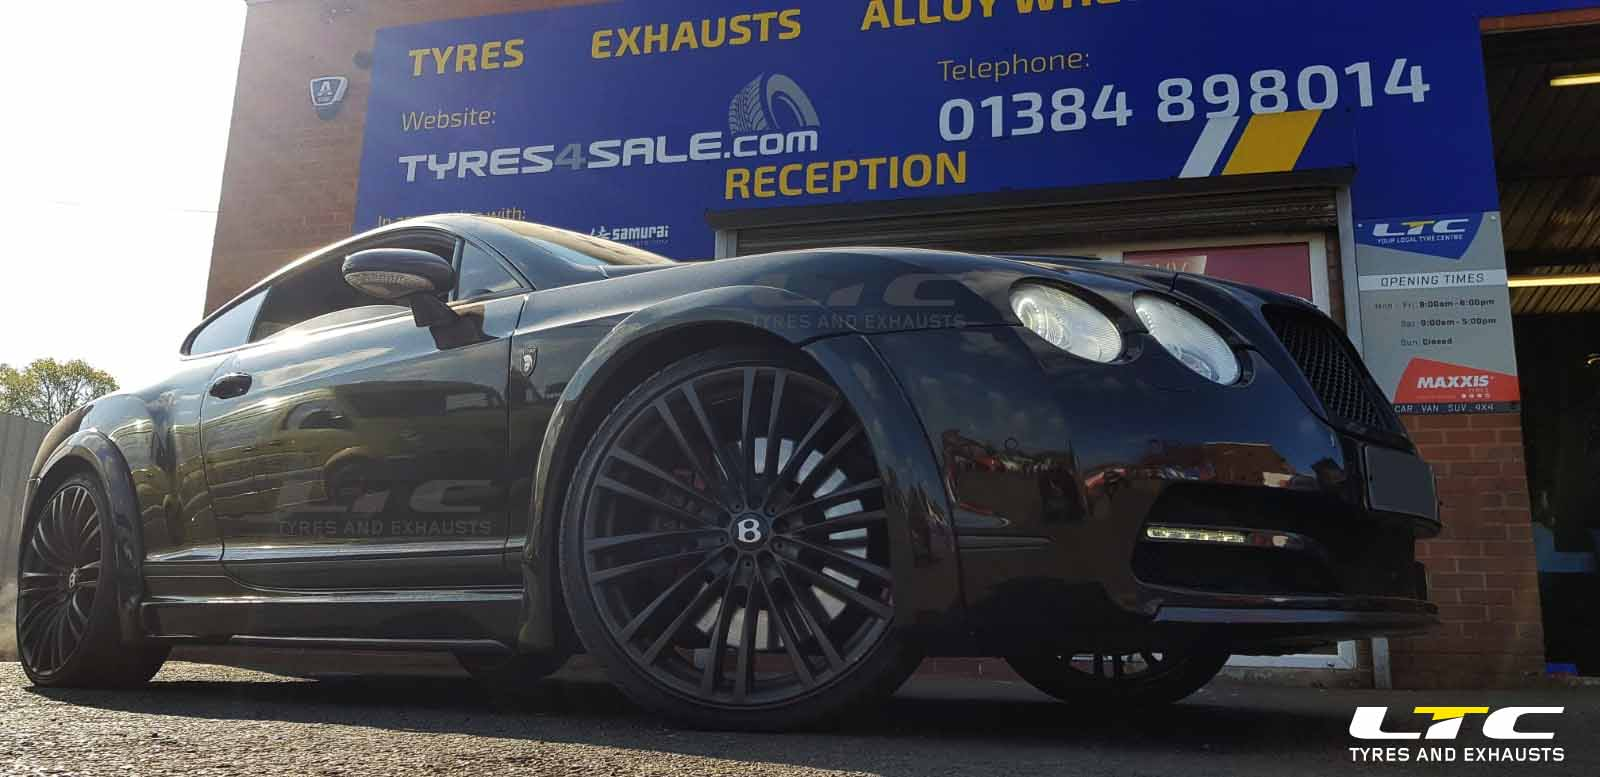 SSR 3 Alloy wheels for Bentley Continental GT